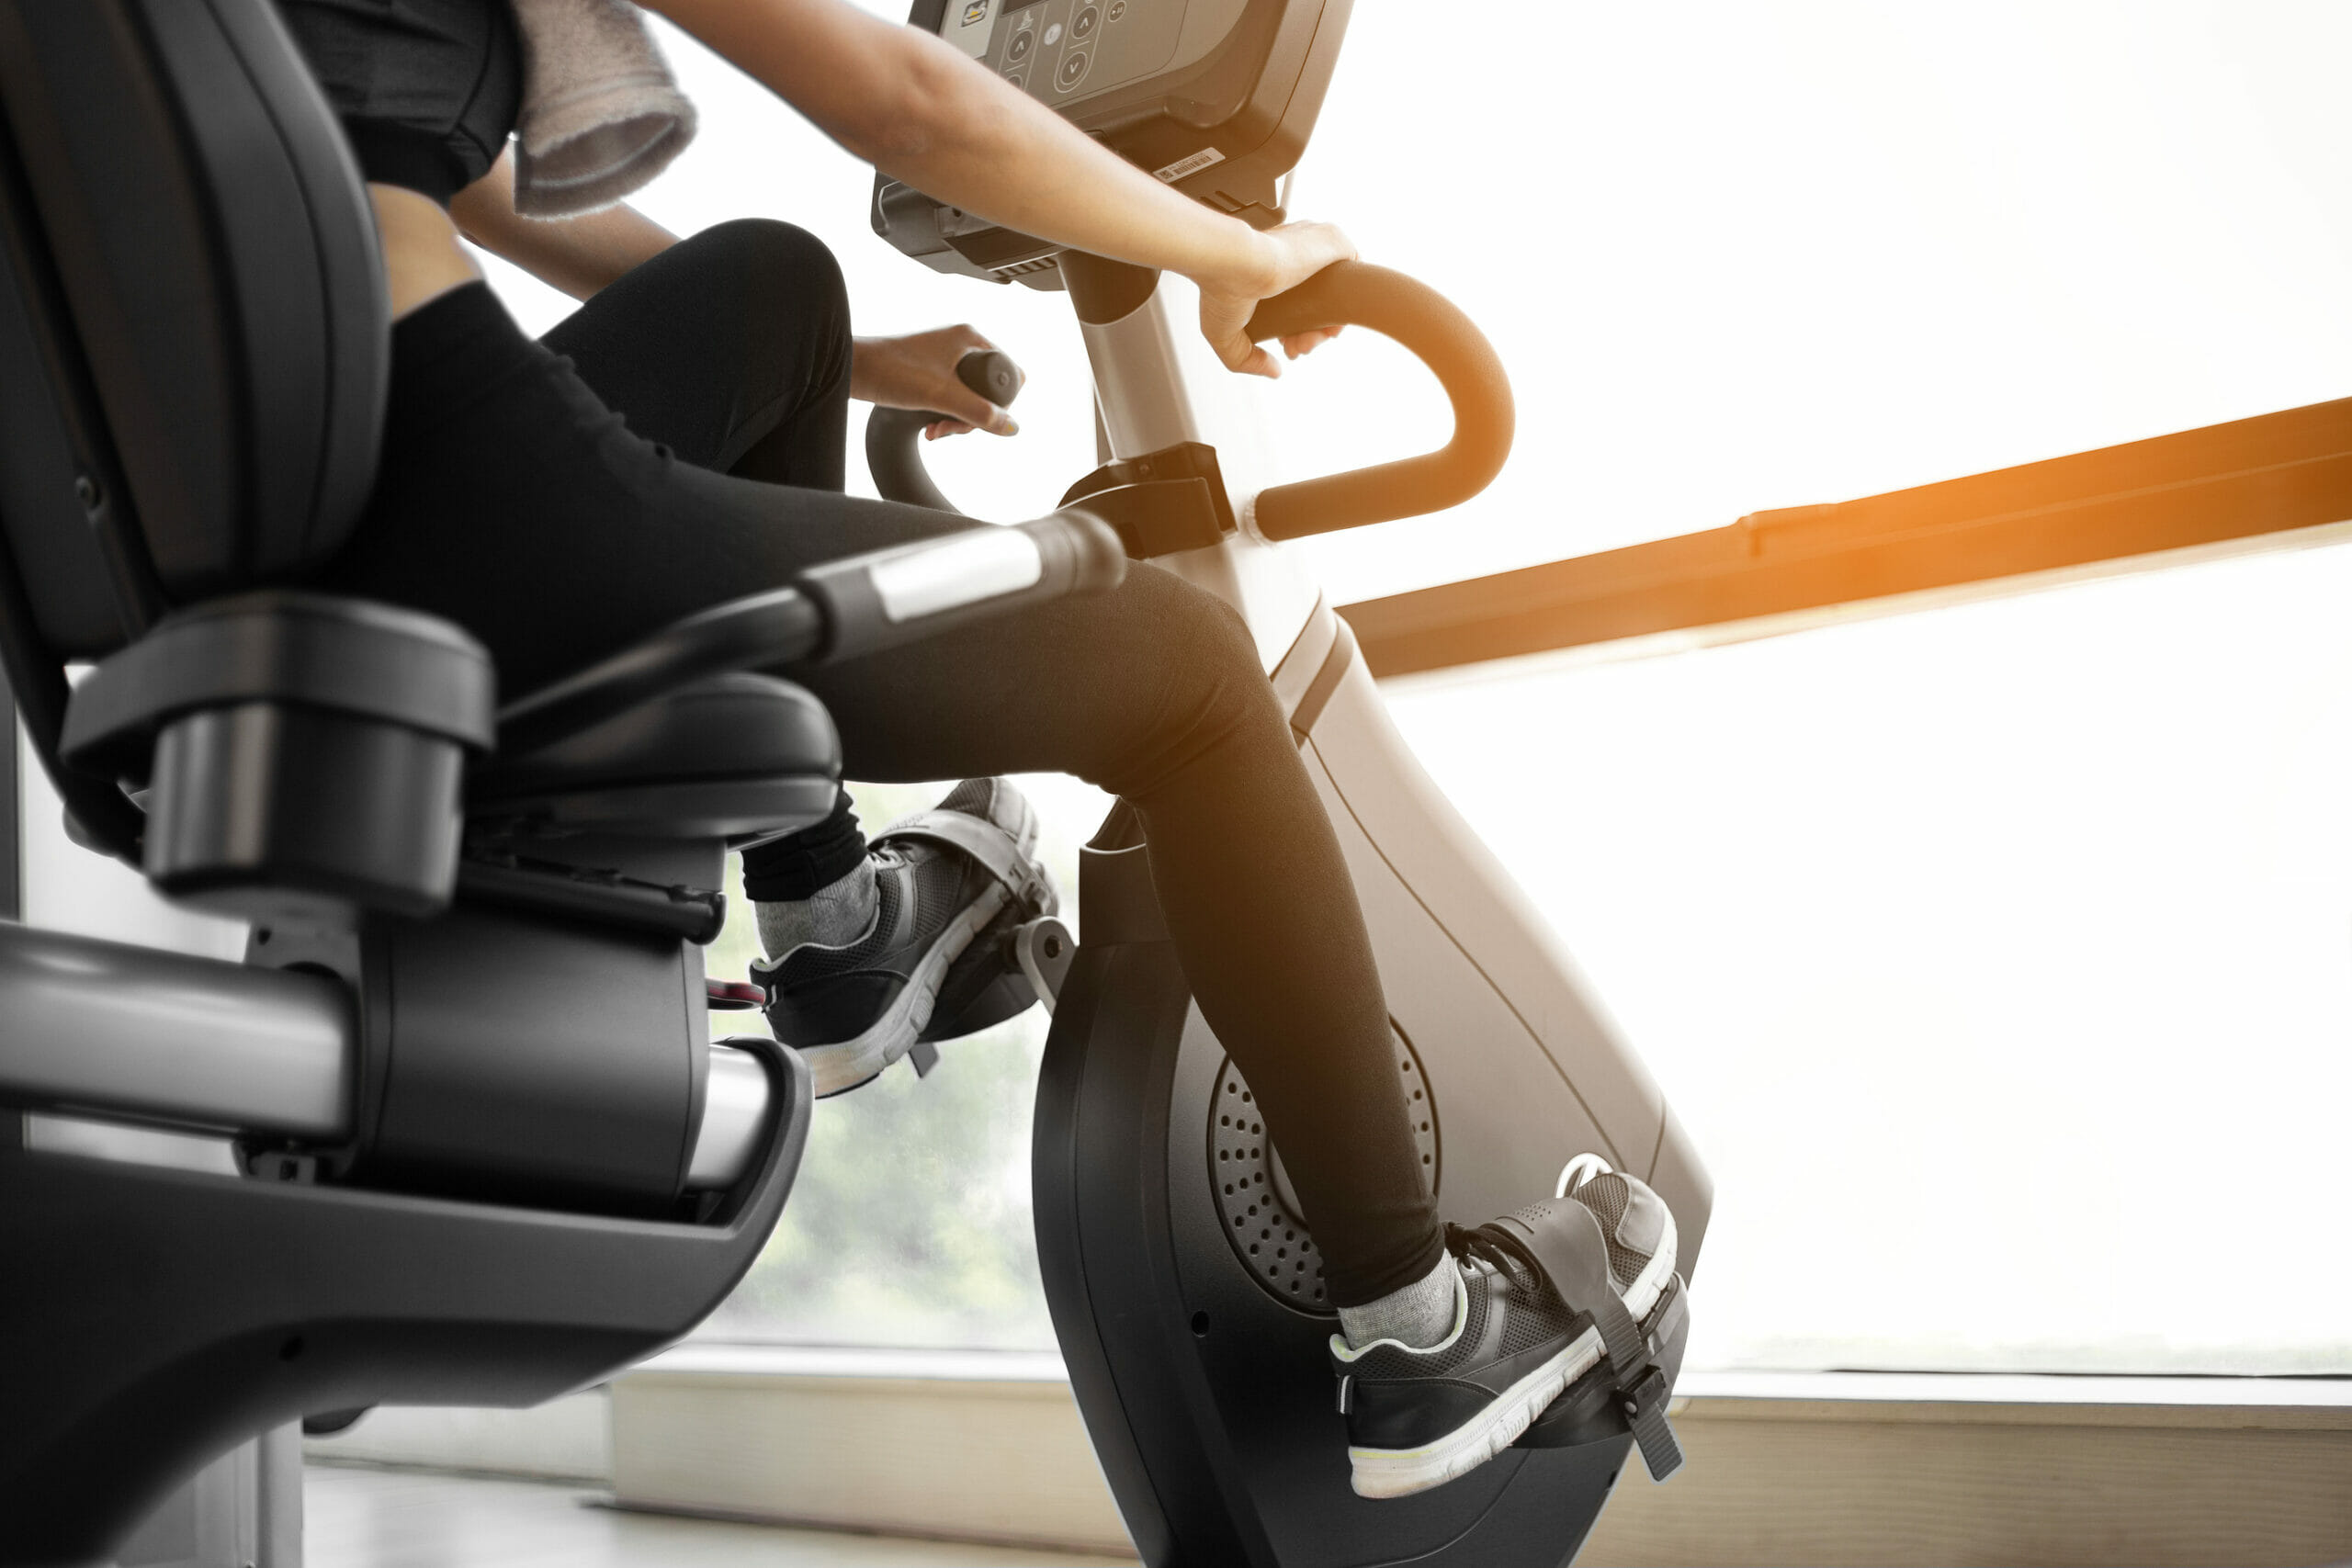 NordicTrack Commercial VR21 Recumbent Bike review